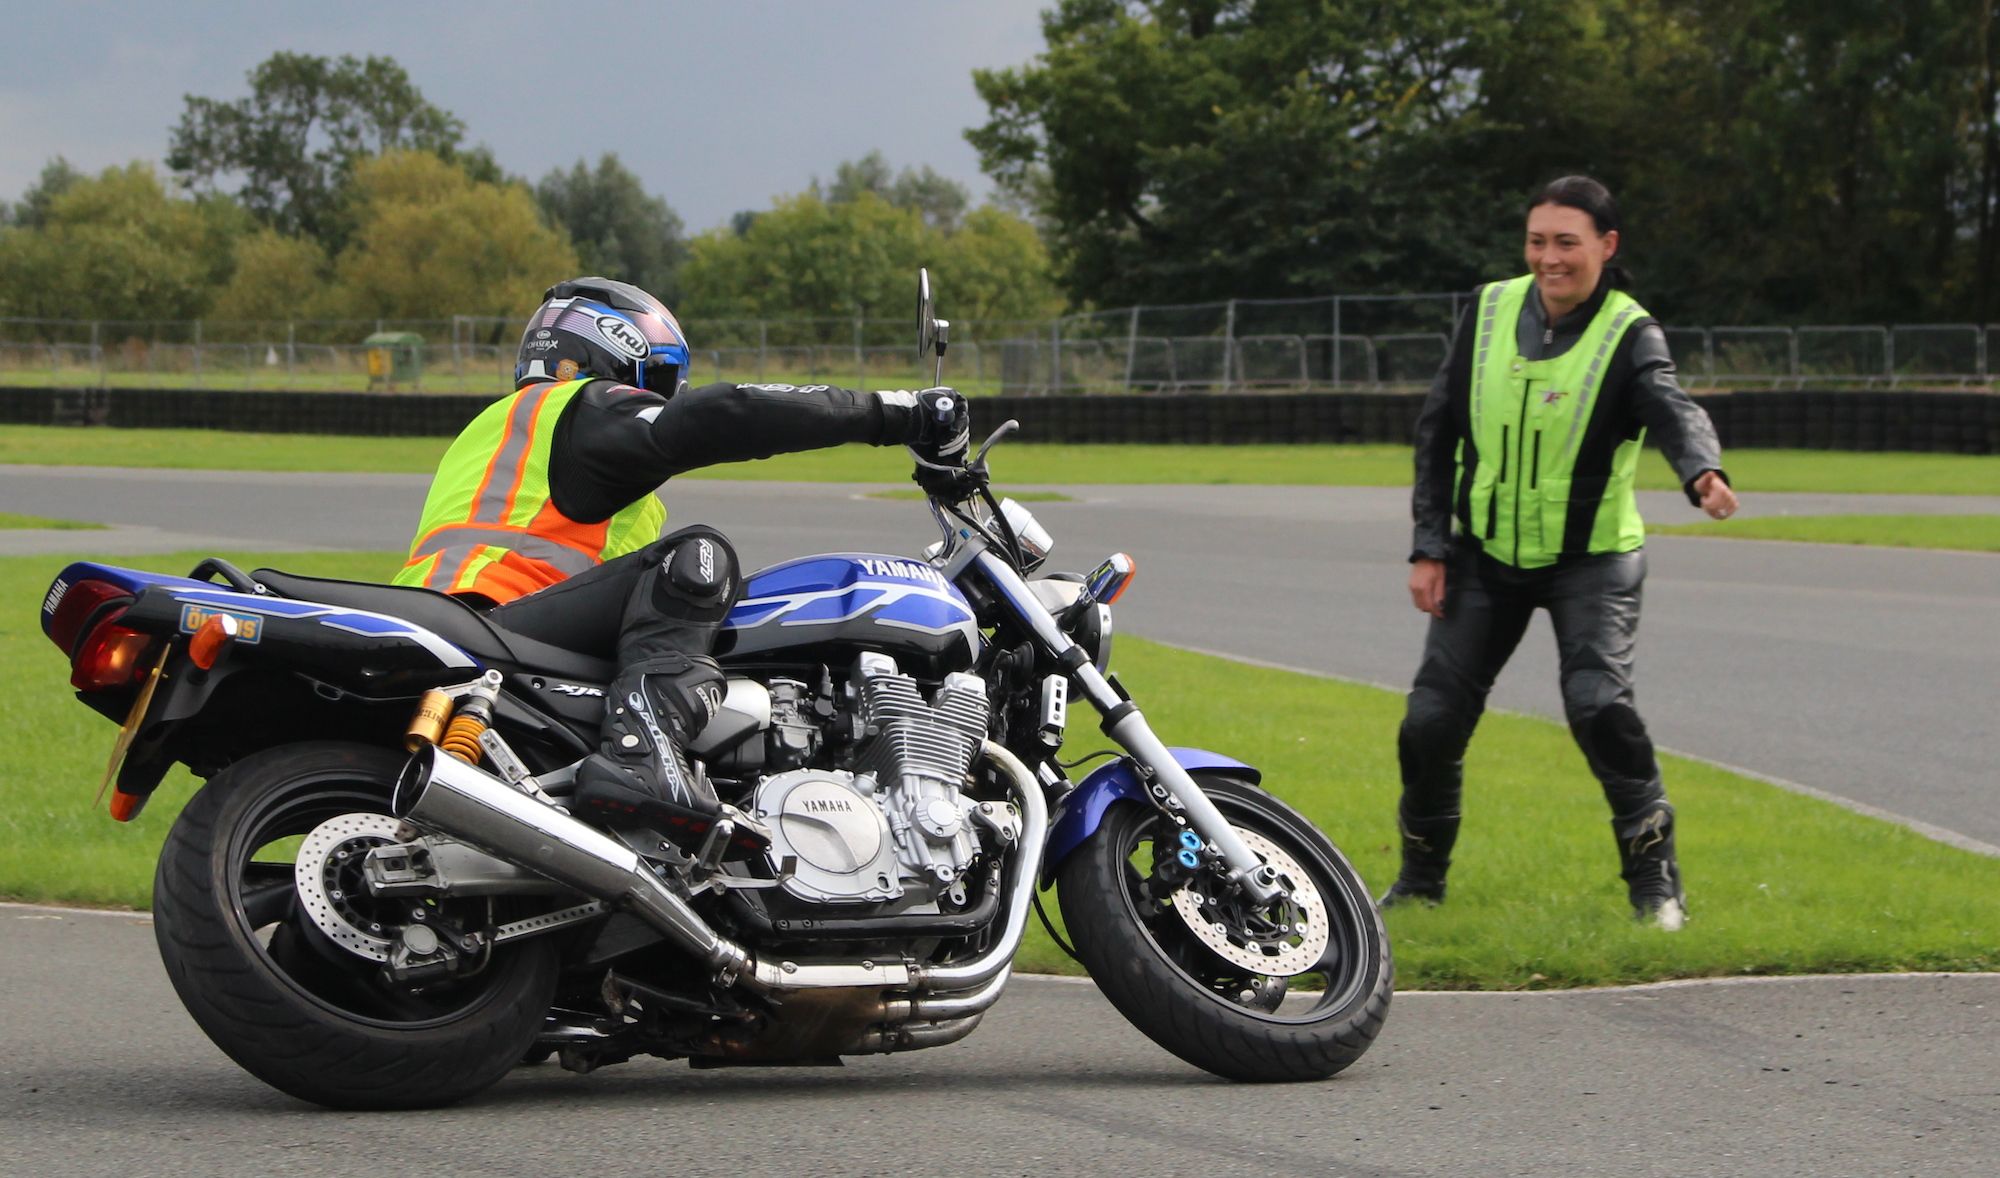 DVSA Direct Access Motorcycle training Leicester, Luton, London, Milton Keynes, Reading, Oxford, CBT Motorcycle test